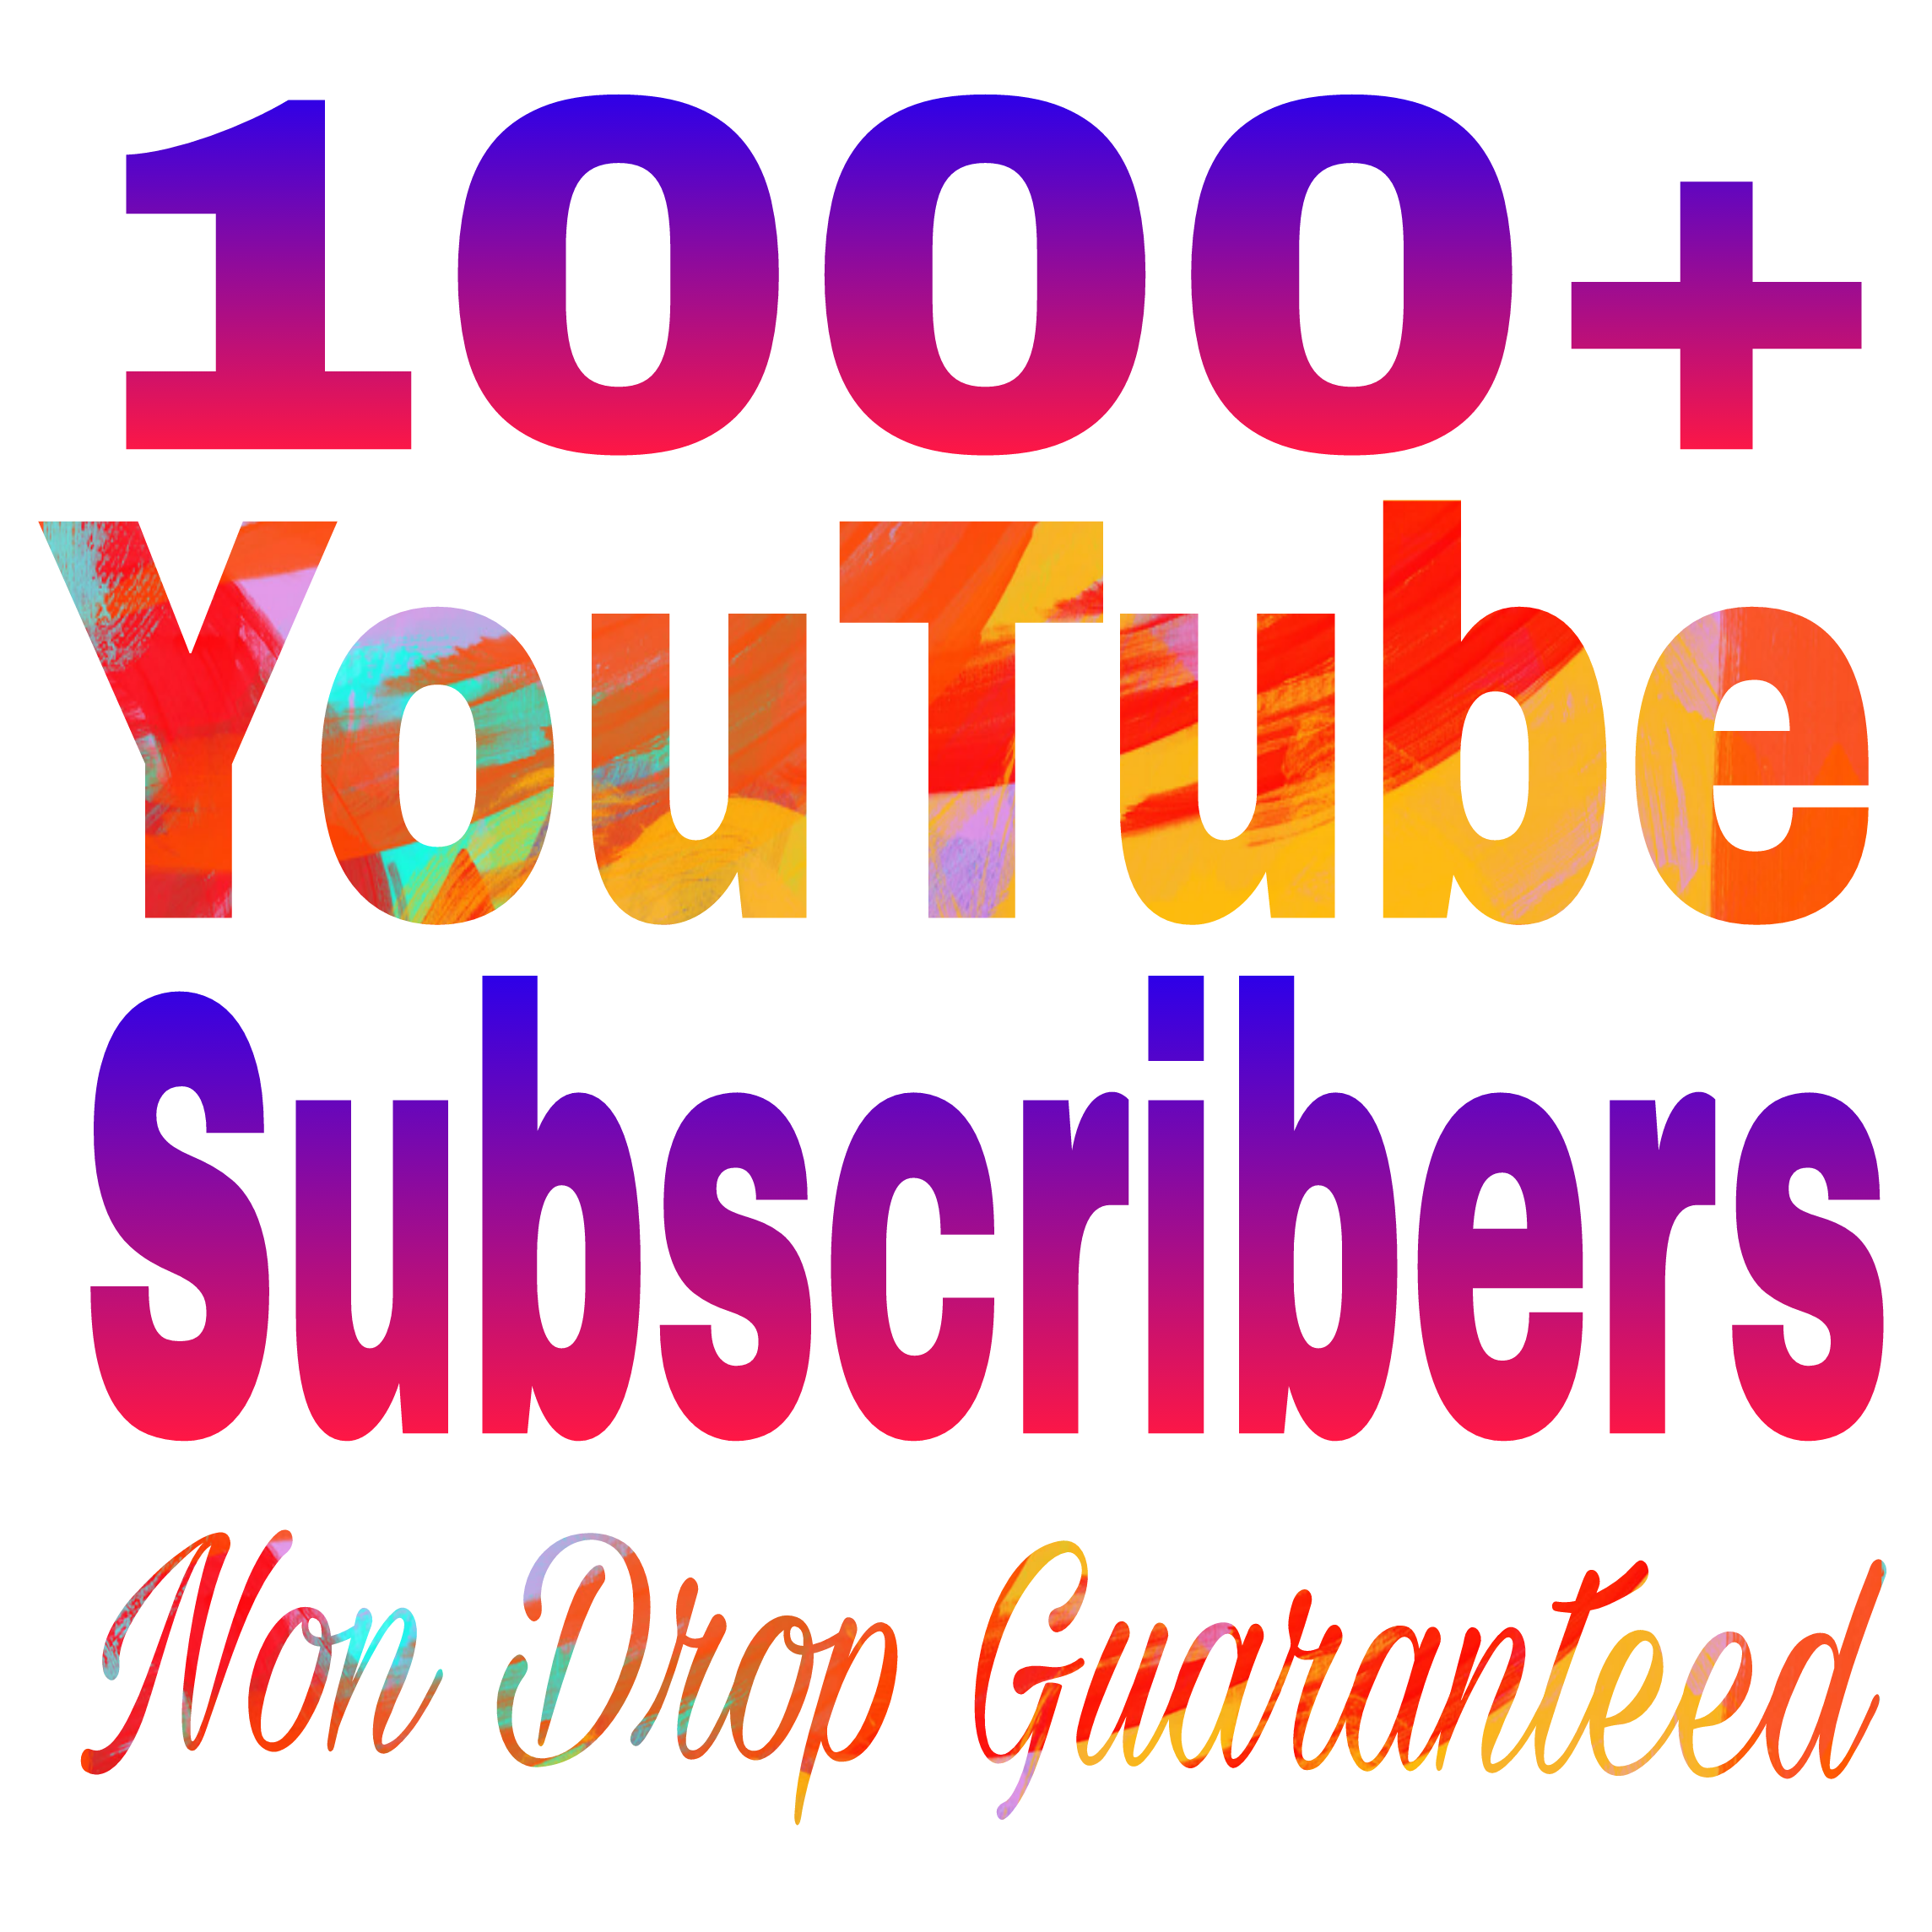 Instant start 1000+ channel subs non drop refill guaranteed in 24-97 hours delivery